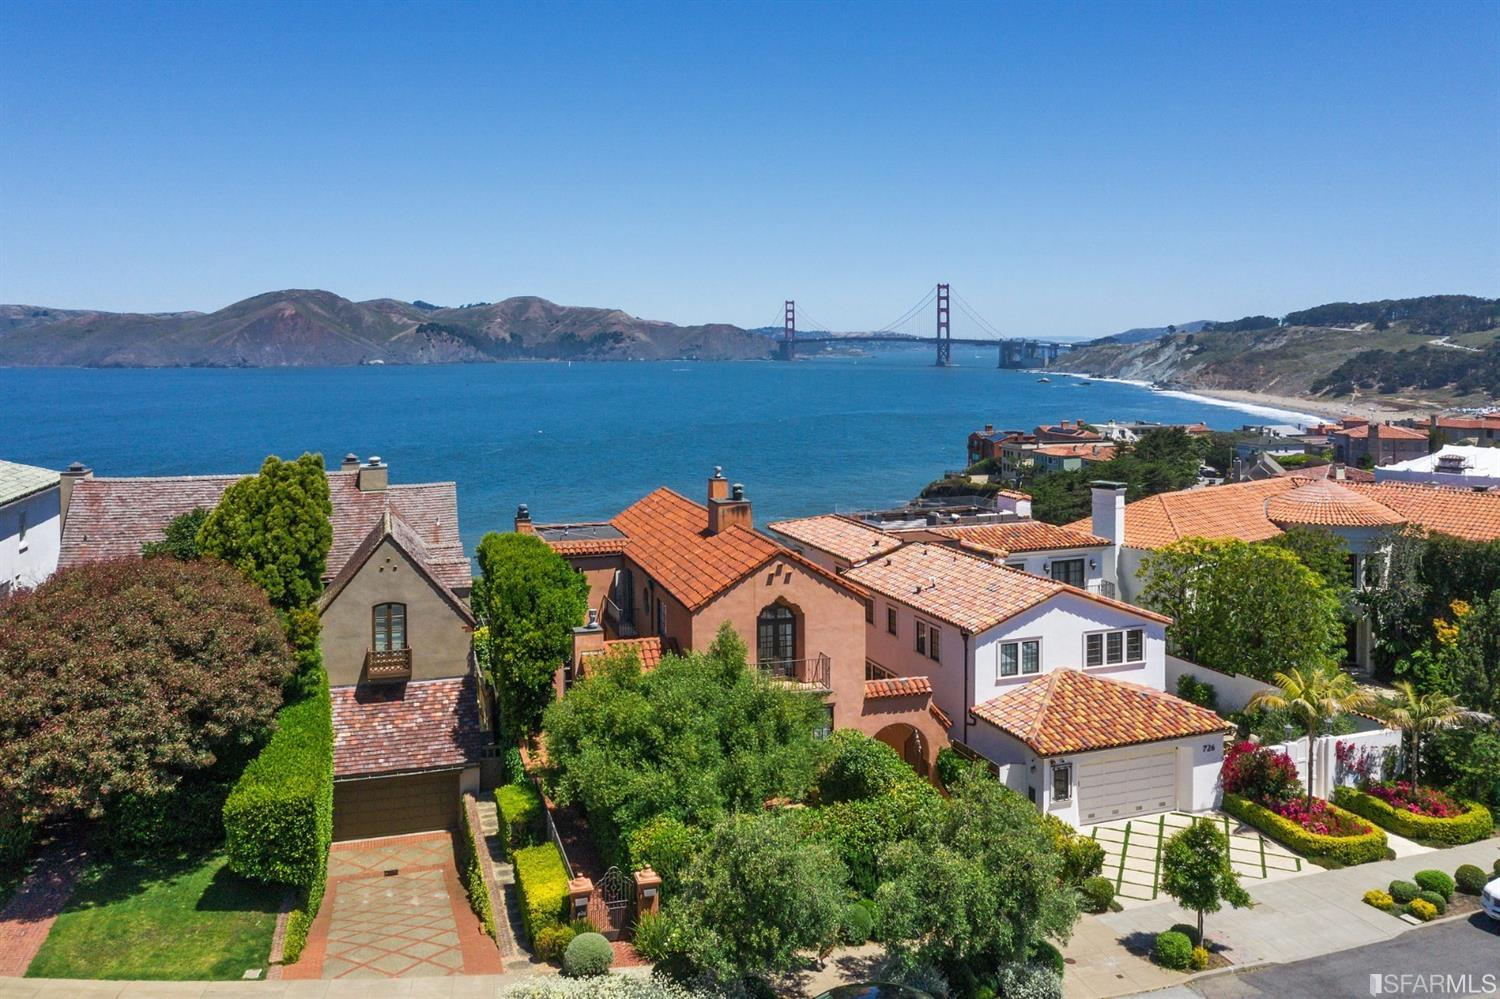 Exquisite, beautifully renovated Spanish Mediterranean residence with a modern aesthetic situated in San Francisco's stunning &a